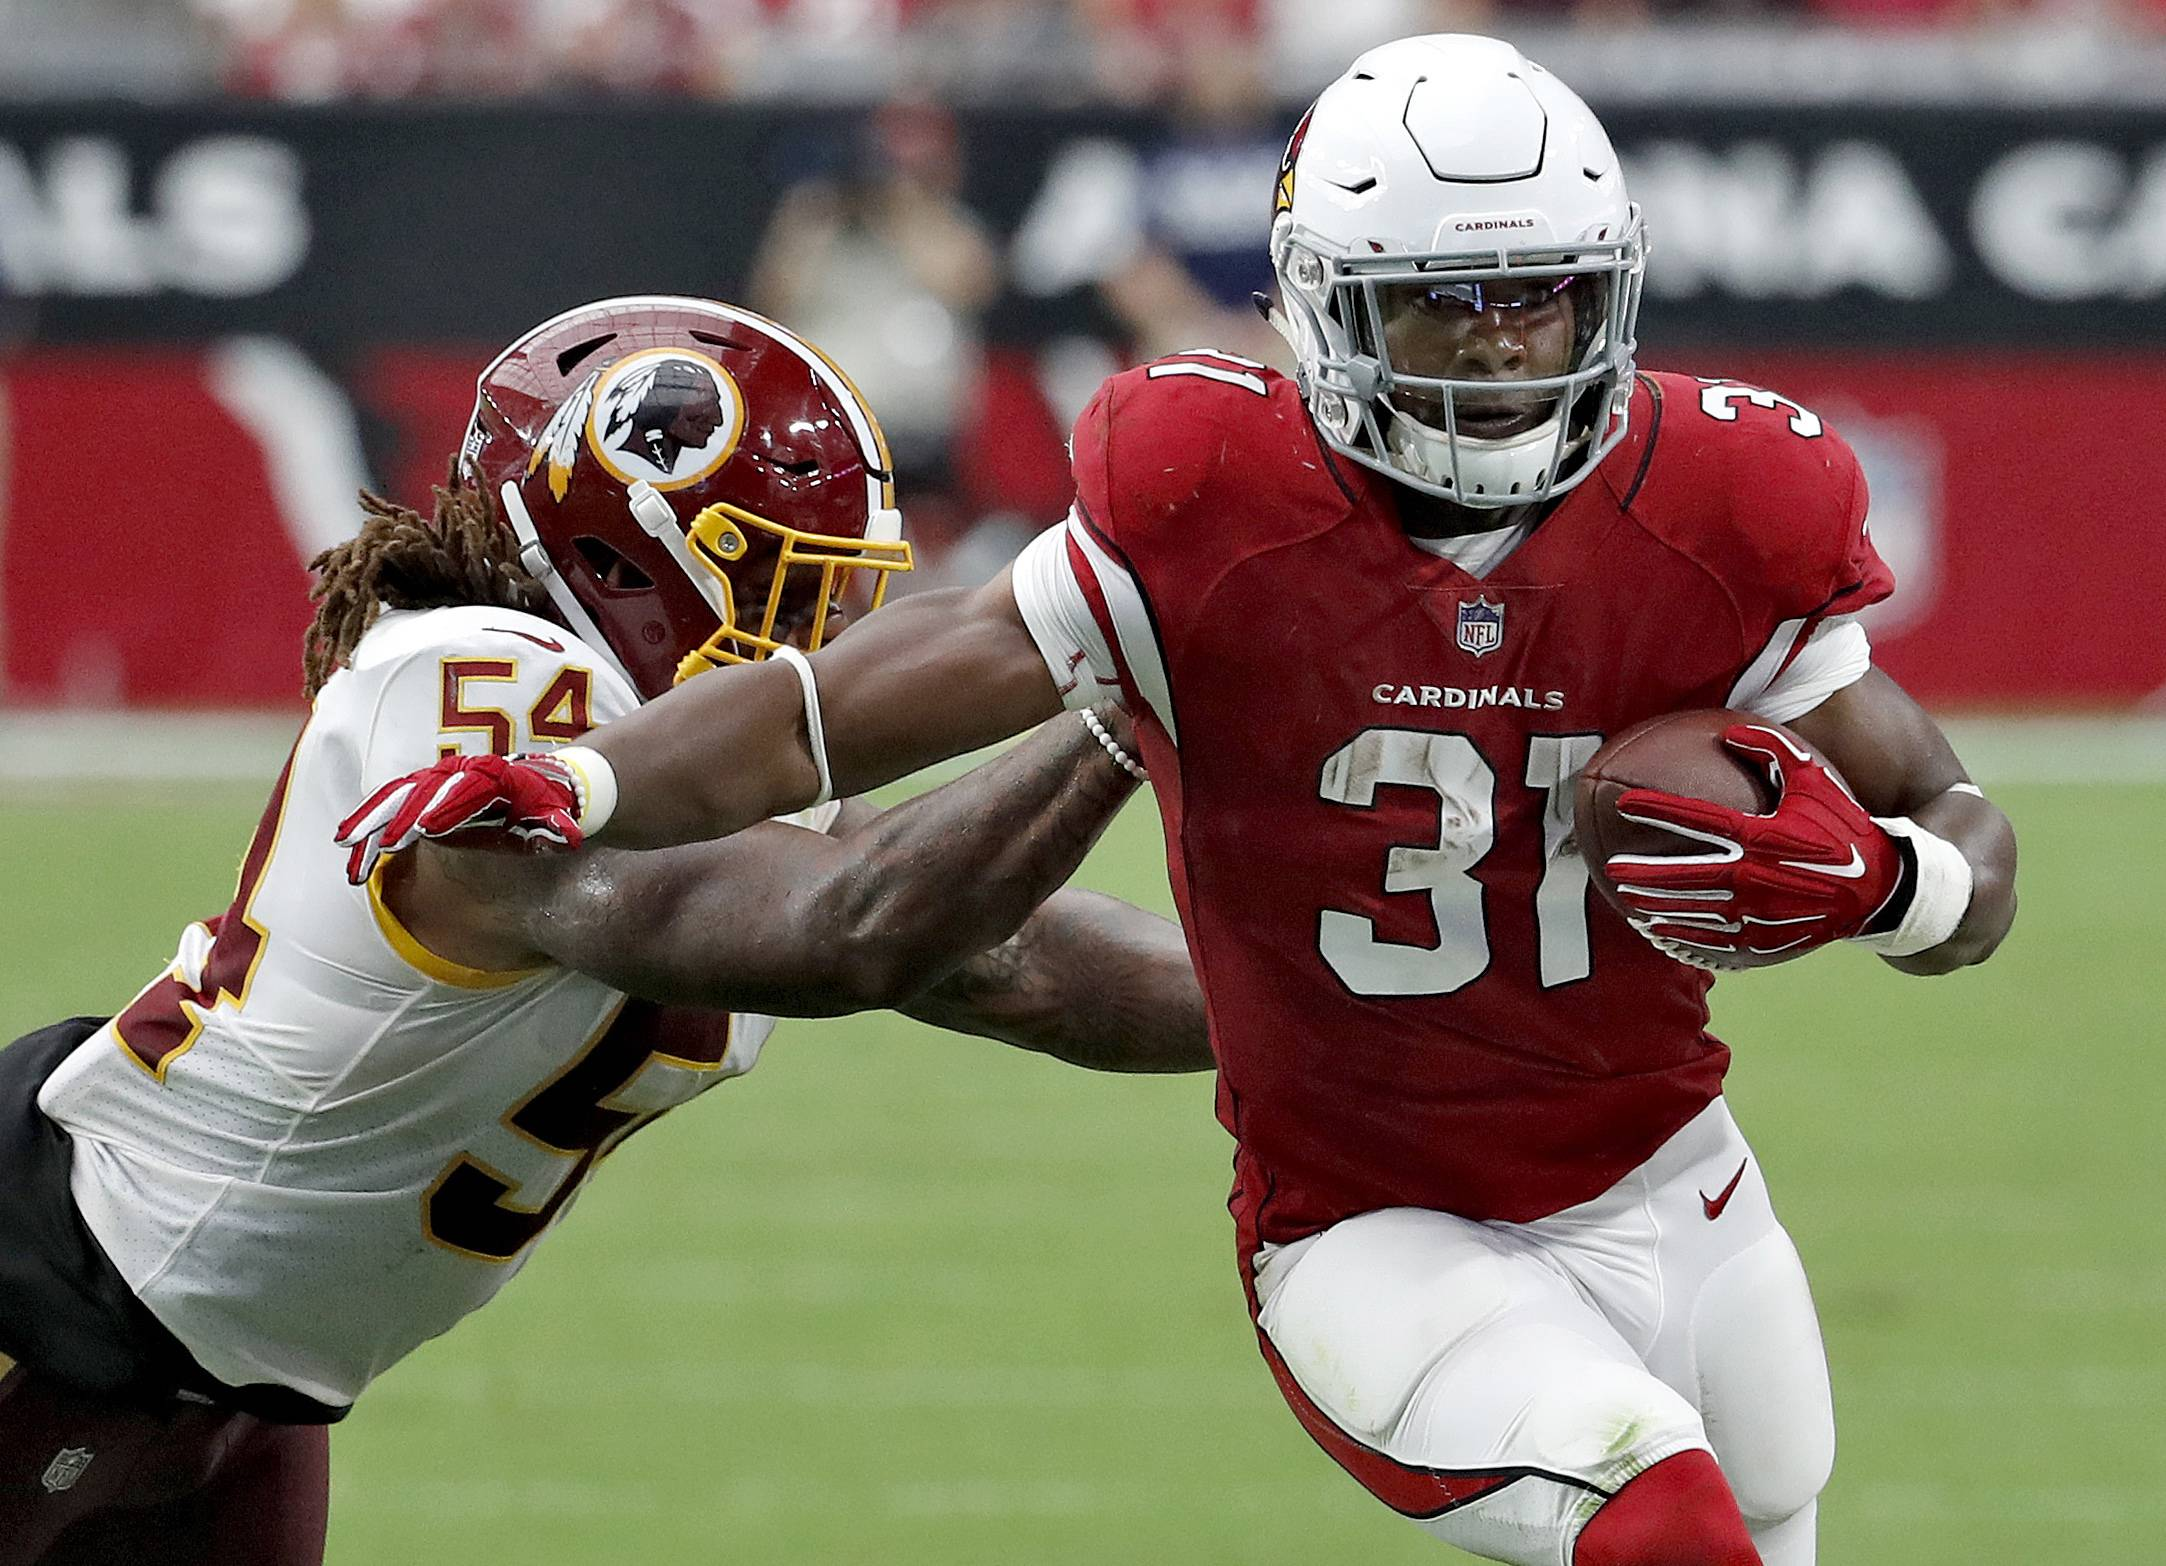 FILE — In this Sept. 9, 2018, file photo, Arizona Cardinals running back David Johnson (31) is hit by Washington Redskins linebacker Mason Foster (54) during the second half of an NFL football game, in Glendale, Ariz. The 0-2 Cardinals face the Chicago Bears on Sunday. (AP Photo/Rick Scuteri, File)